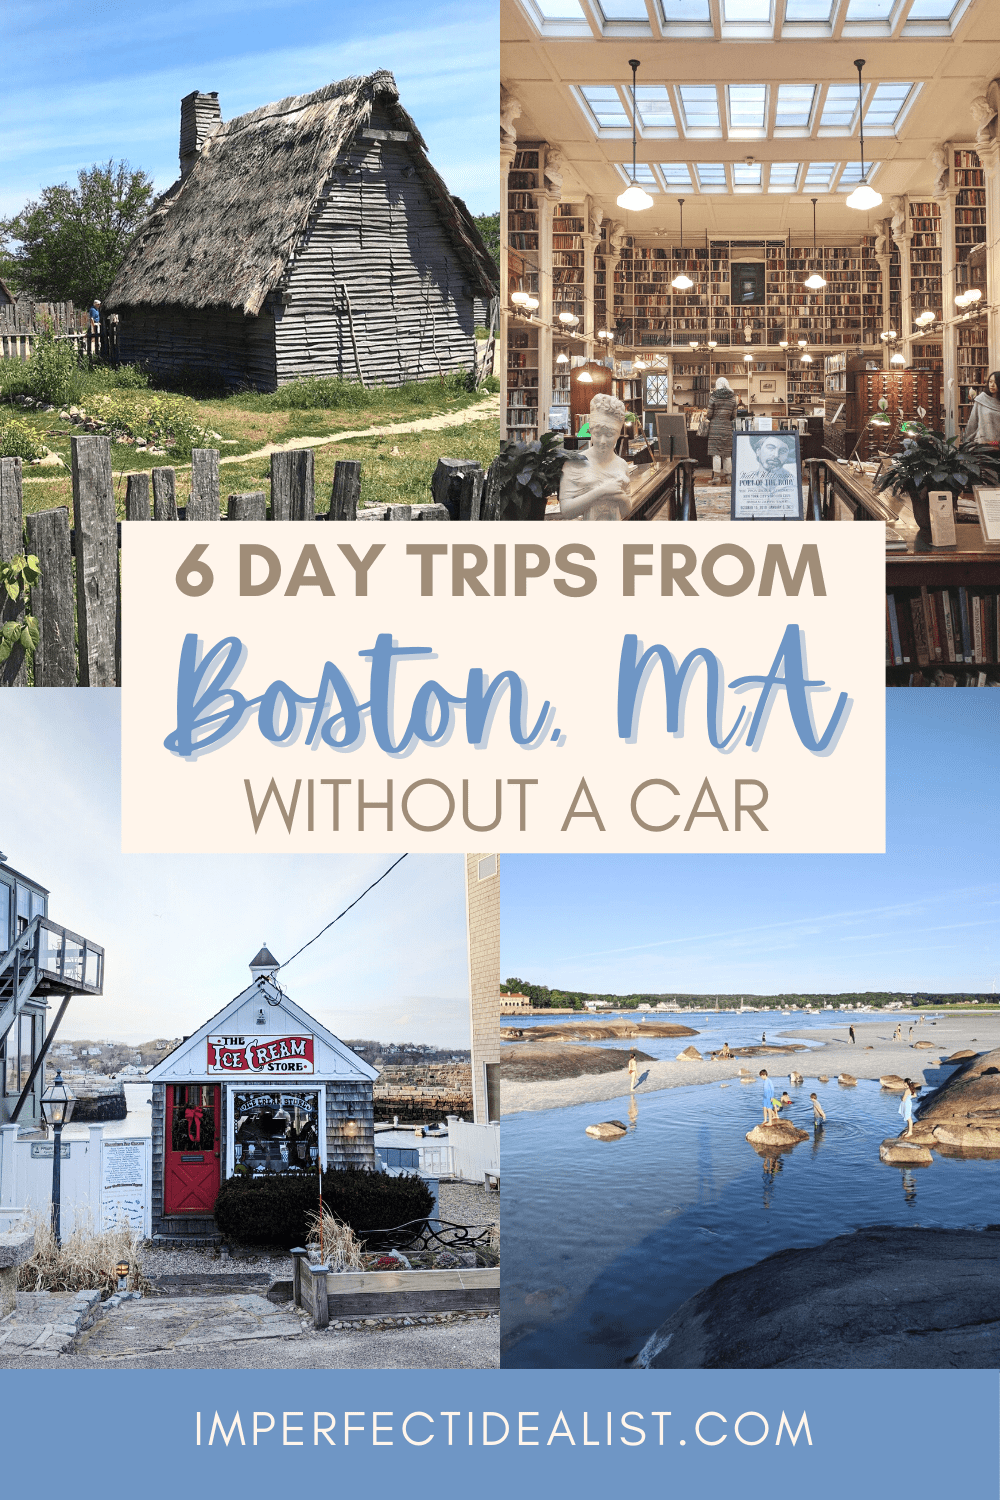 Pinterest pin with 4 photos, 2 above and 2 below. First photo is of Plimouth Plantation, then the Providence Athenaeum, then the Ice Cream Store in Rockport, then Wingaersheek Beach in Gloucester. Pin reads: 6 Day Trips from Boston Without a Car